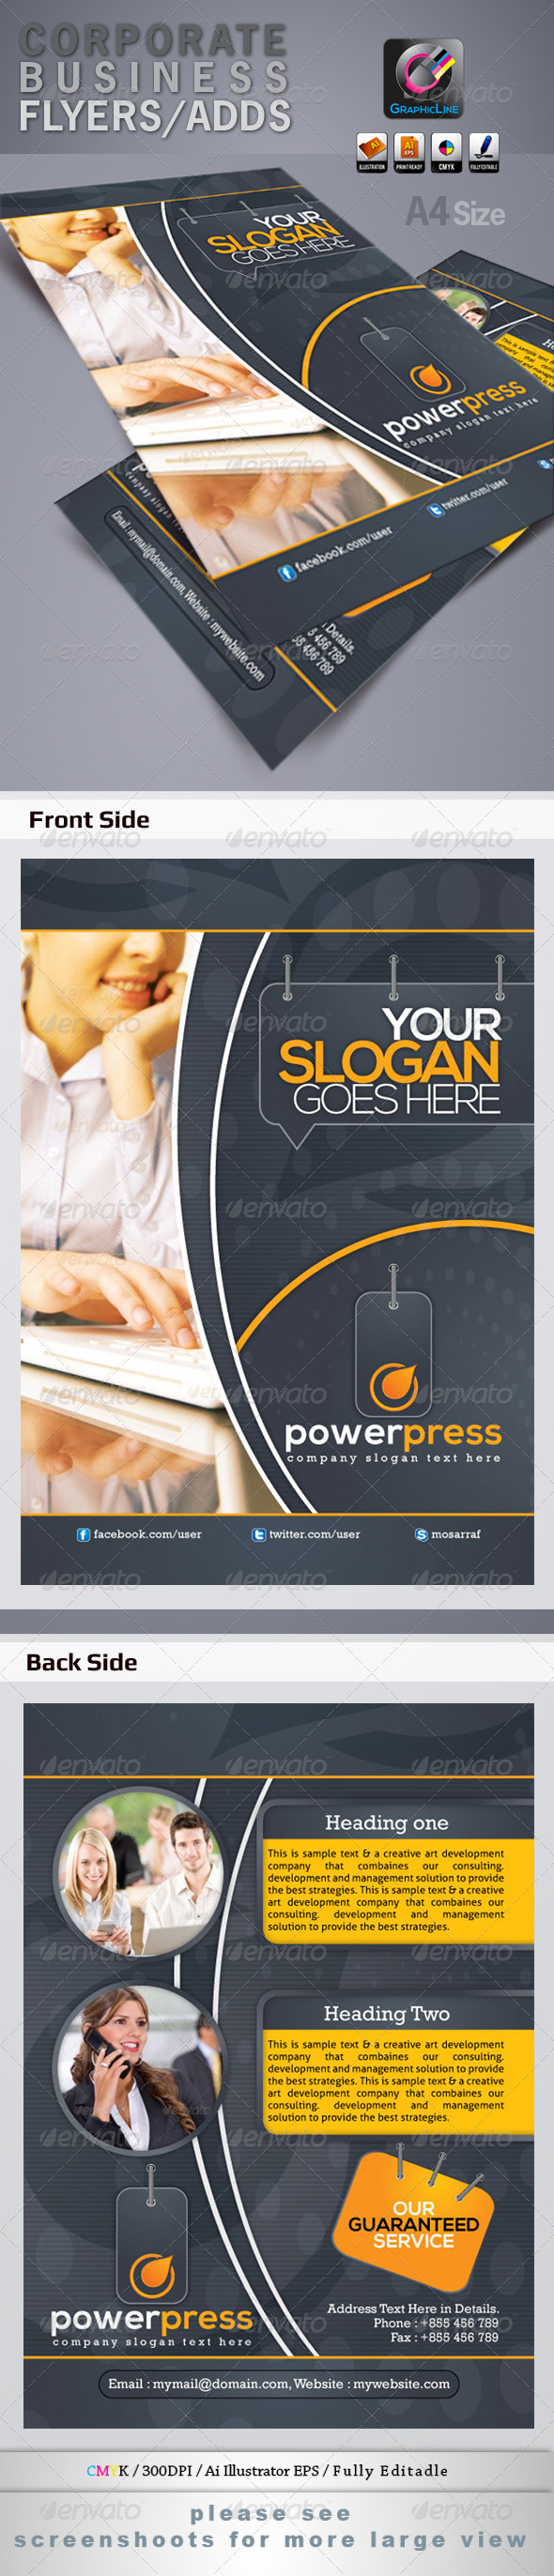 GraphicRiver Power Press Corporate Business Flyers Adds 4208811